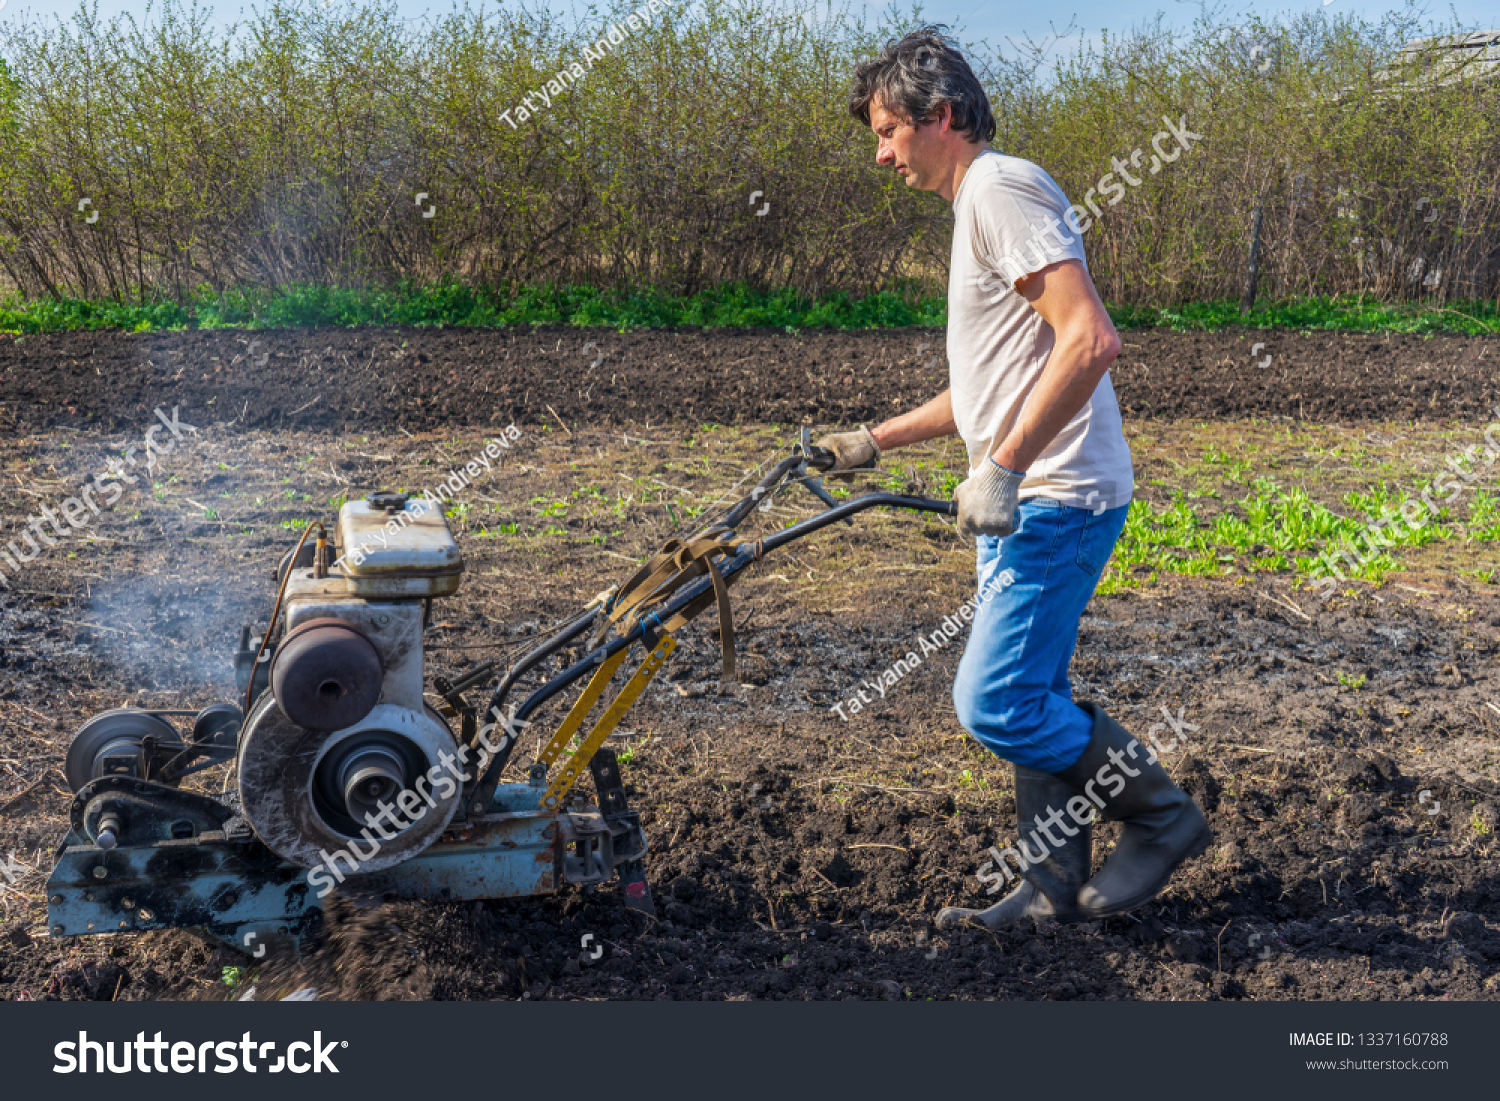 Man in wellingtons with cultivator ploughs ground in sunny day. Land cultivation, soil tillage. Spring work in garden. Gardening concept #1337160788